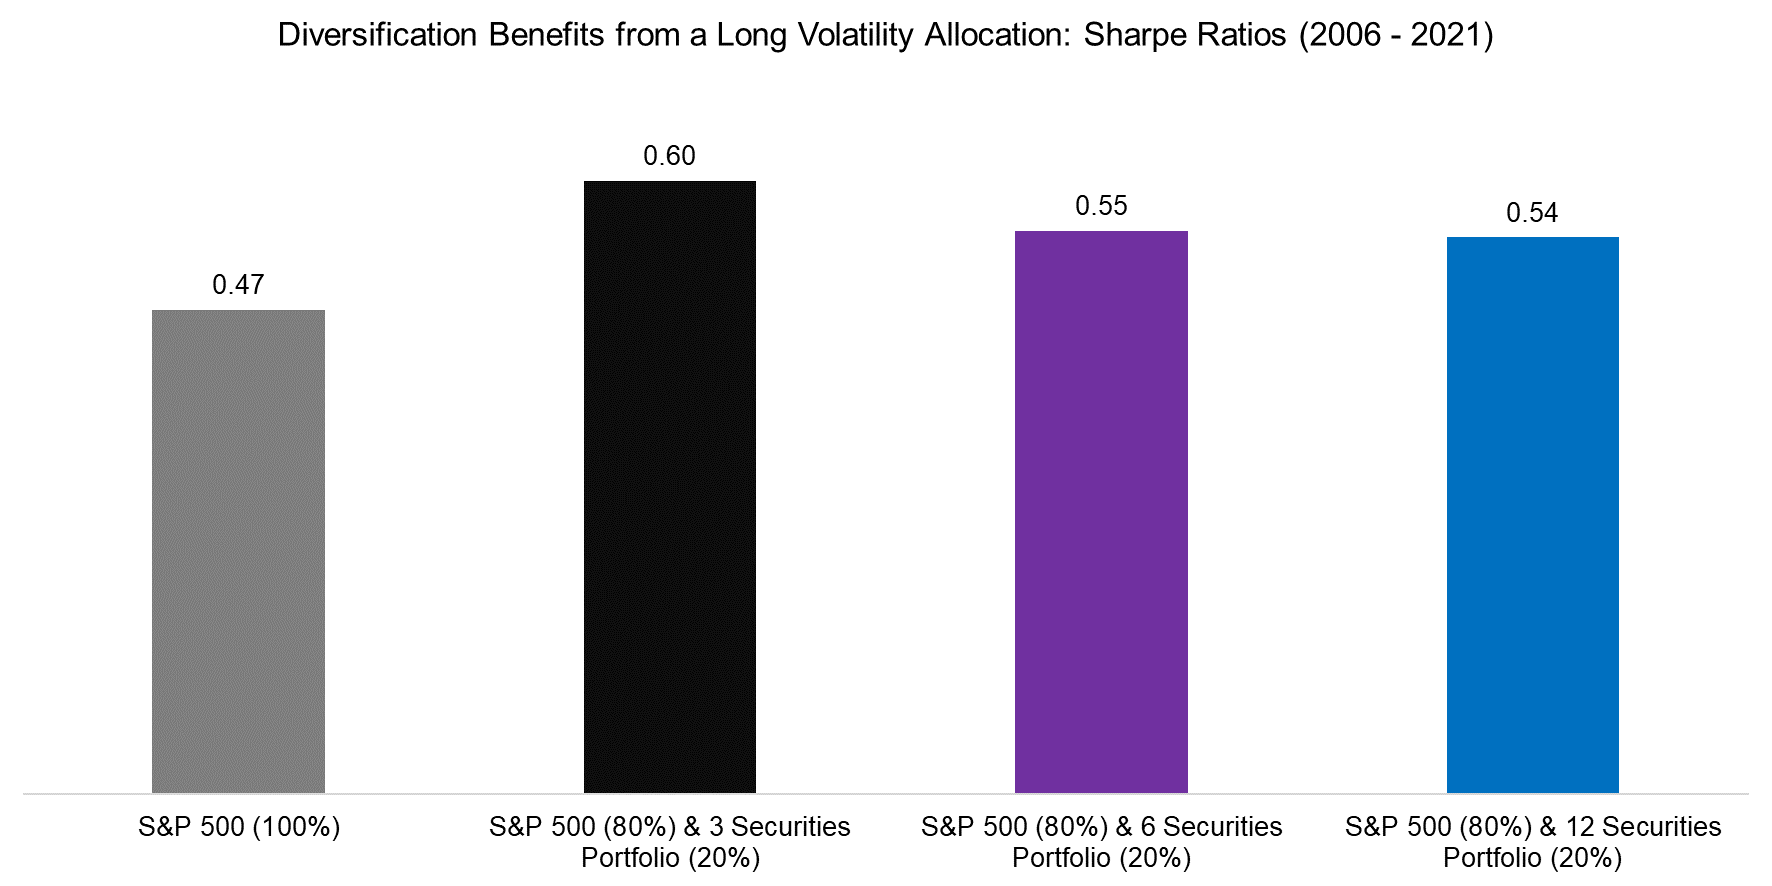 Diversification Benefits from a Long Volatility Allocation Sharpe Ratios (2006 - 2021)